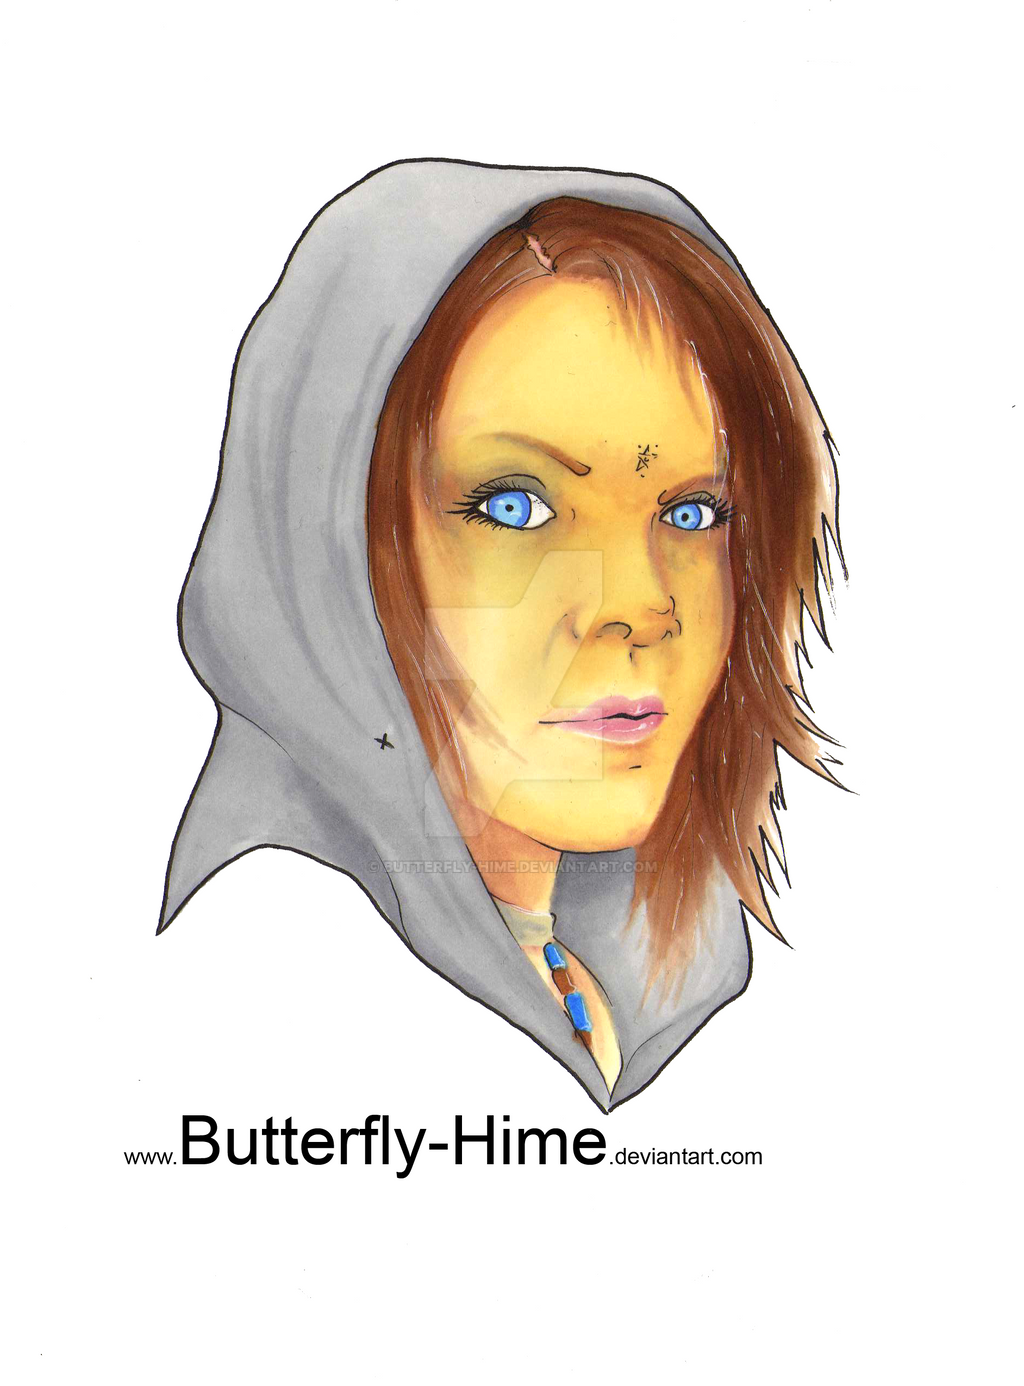 Butterfly-Hime's Profile Picture